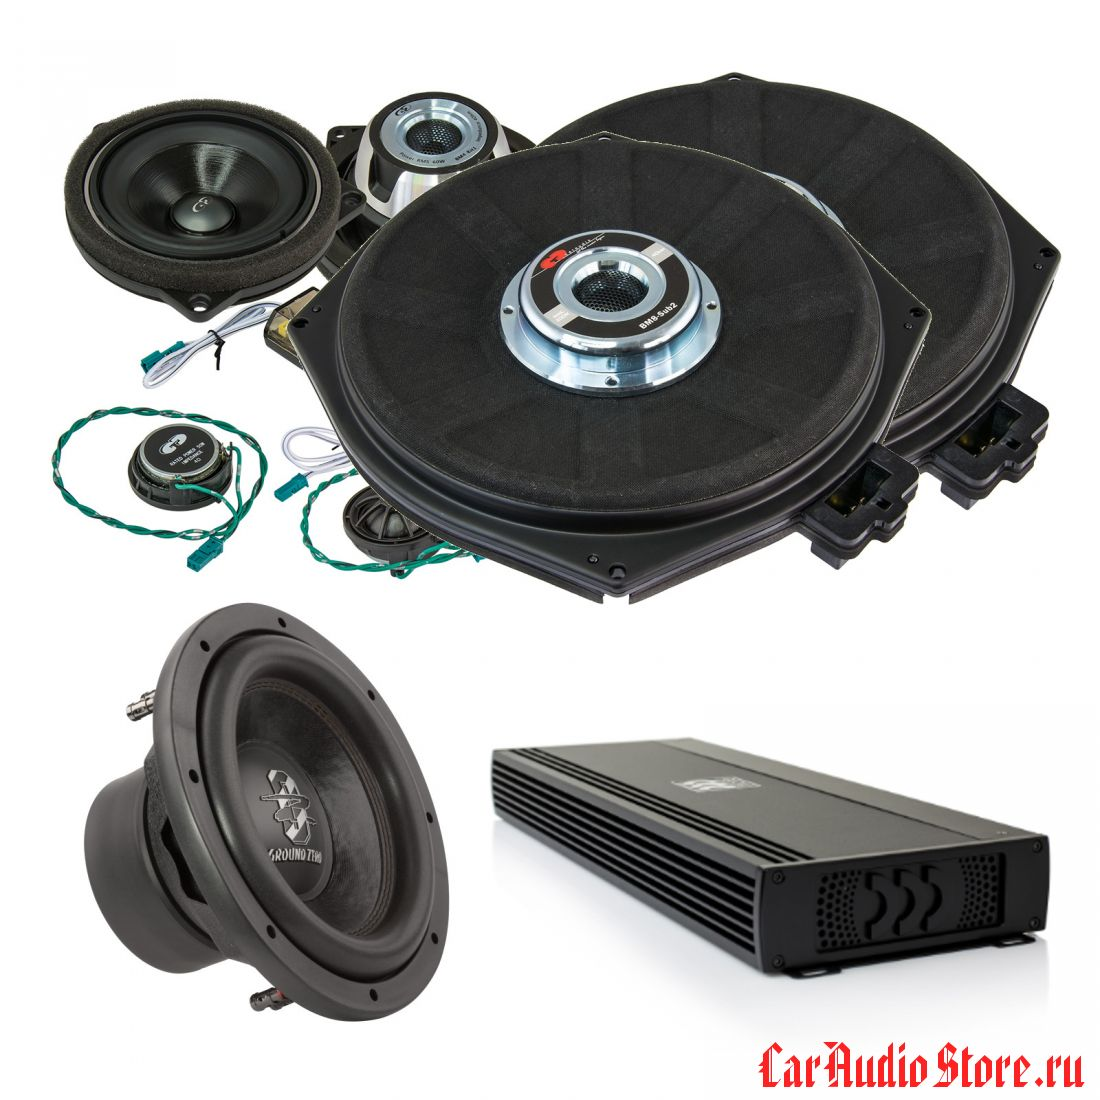 HIFI Kit CDT Audio 1.4 (MOREL)